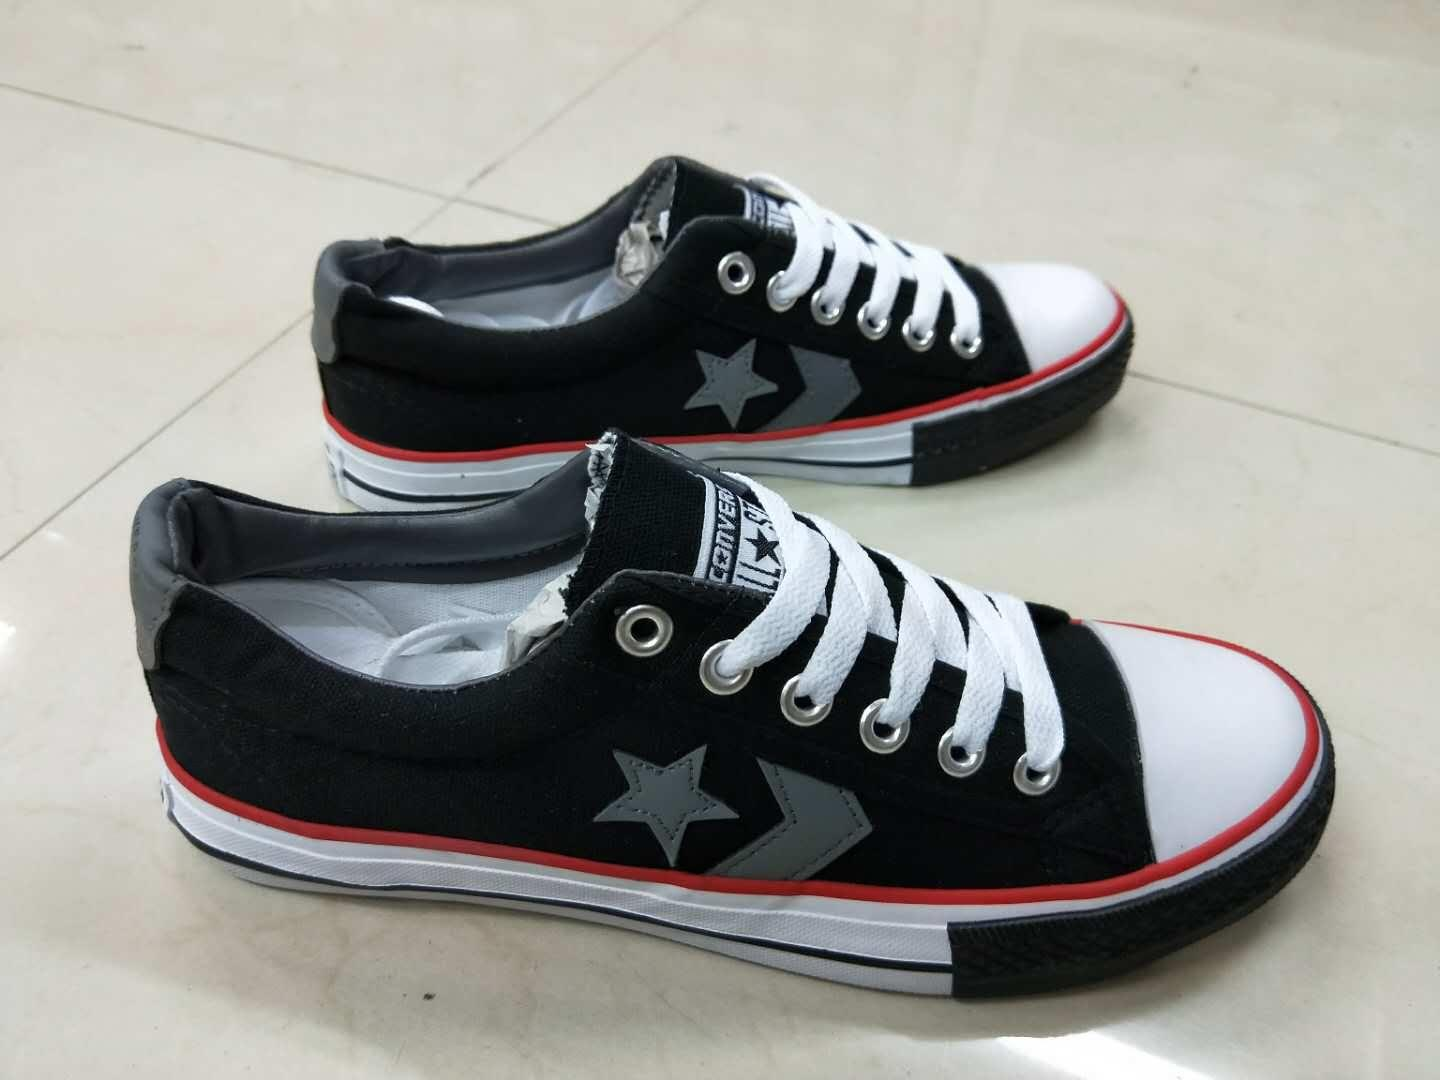 00f81846a5 Converse Philippines: Converse price list - Shoes for Men & Women ...